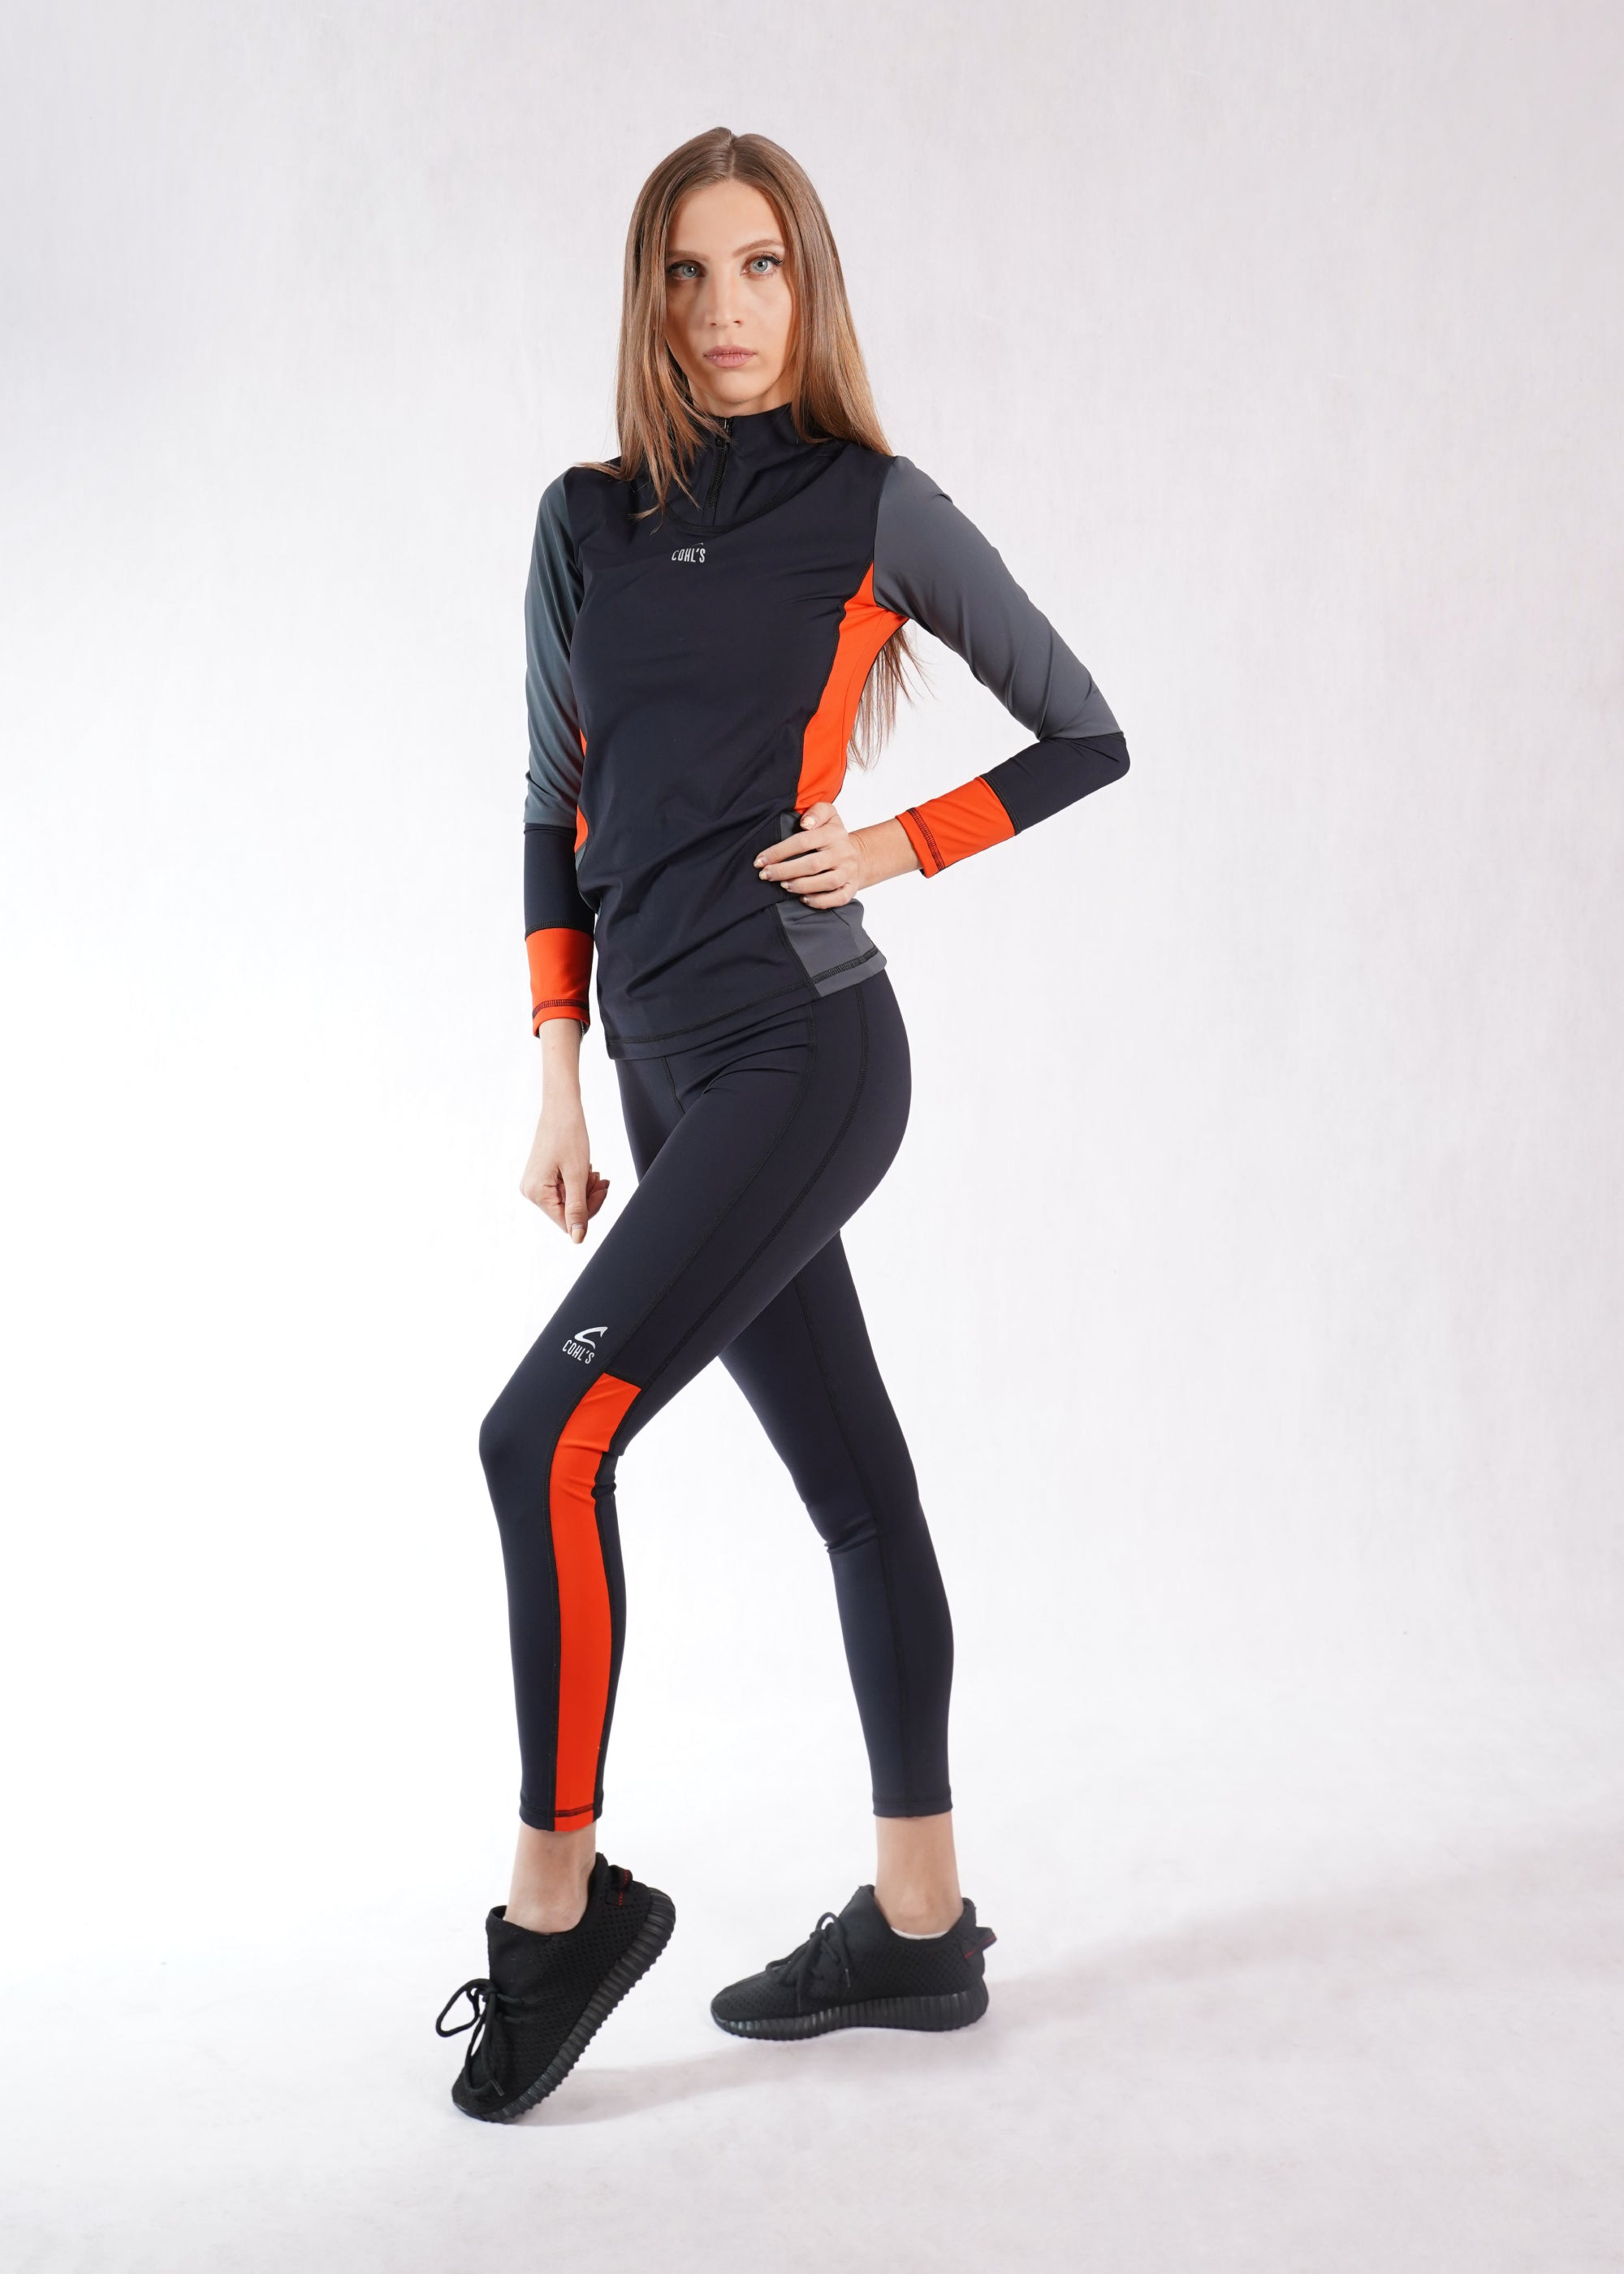 Leggings Black/Orange- C122003